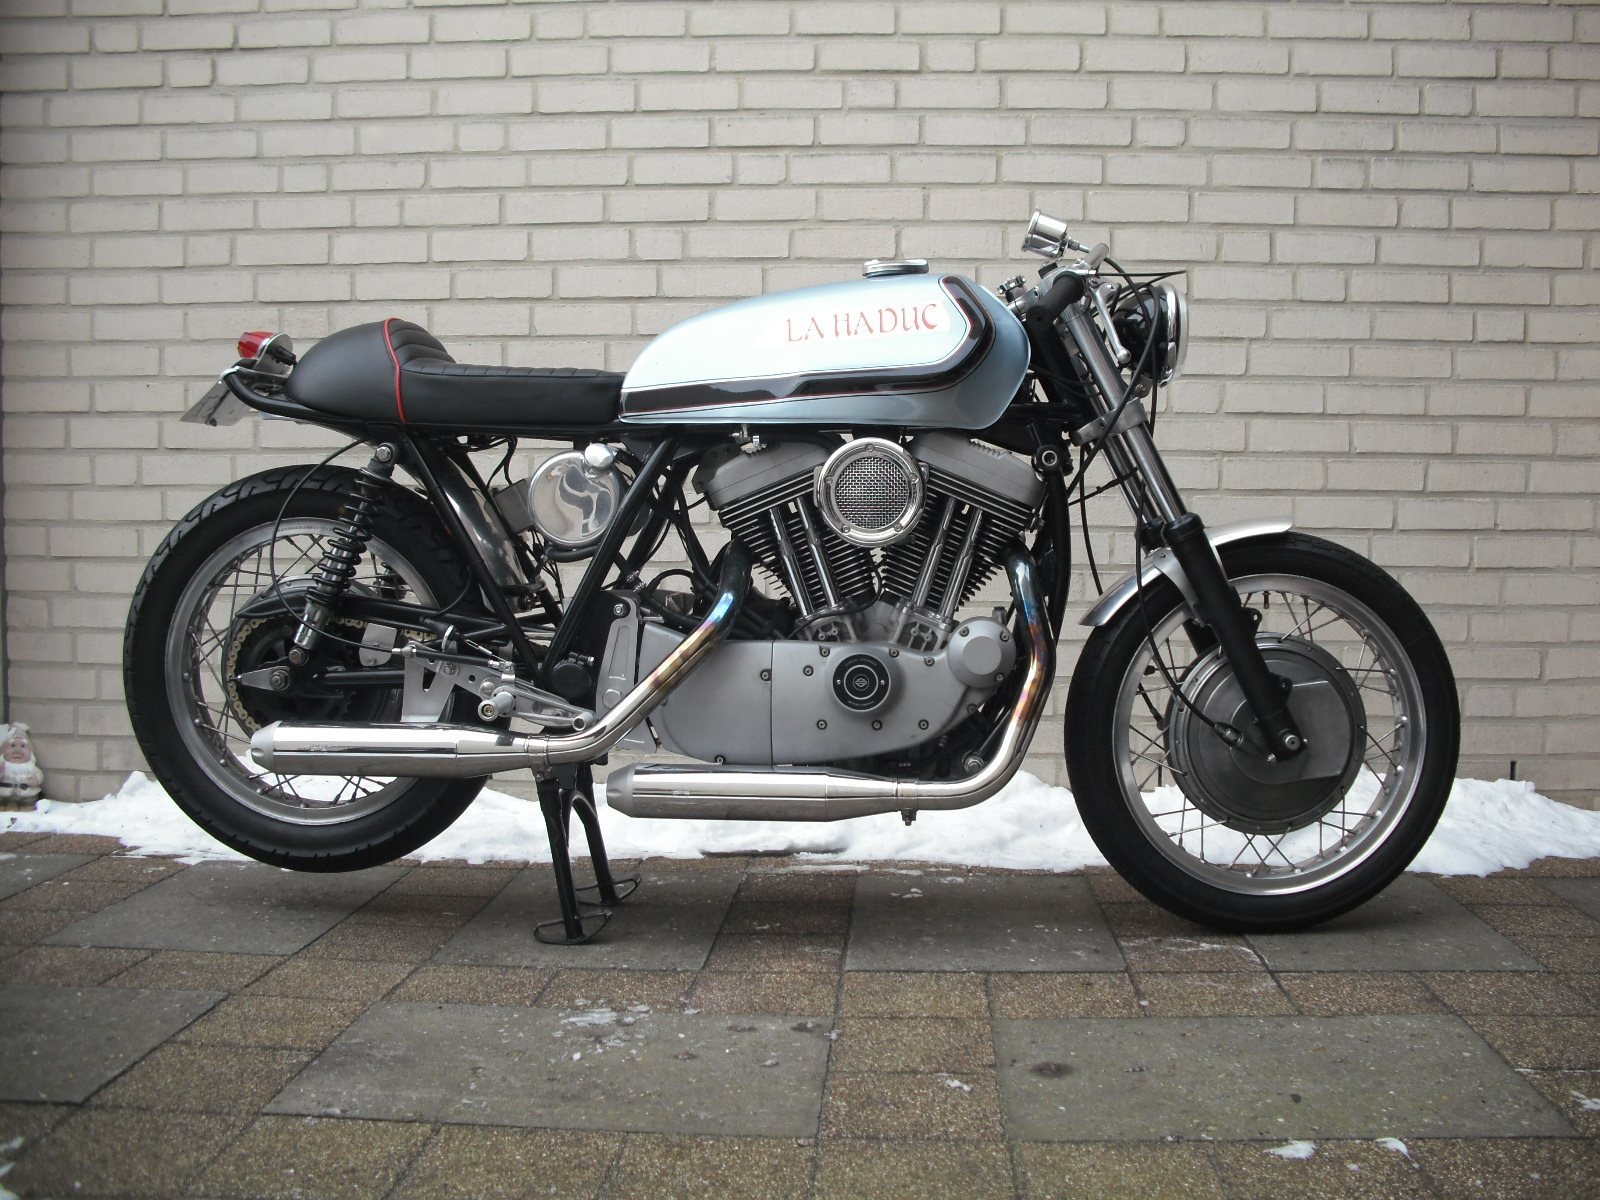 Return of the Cafe Racers - Readers Rides: La Haduc Cafe Racer